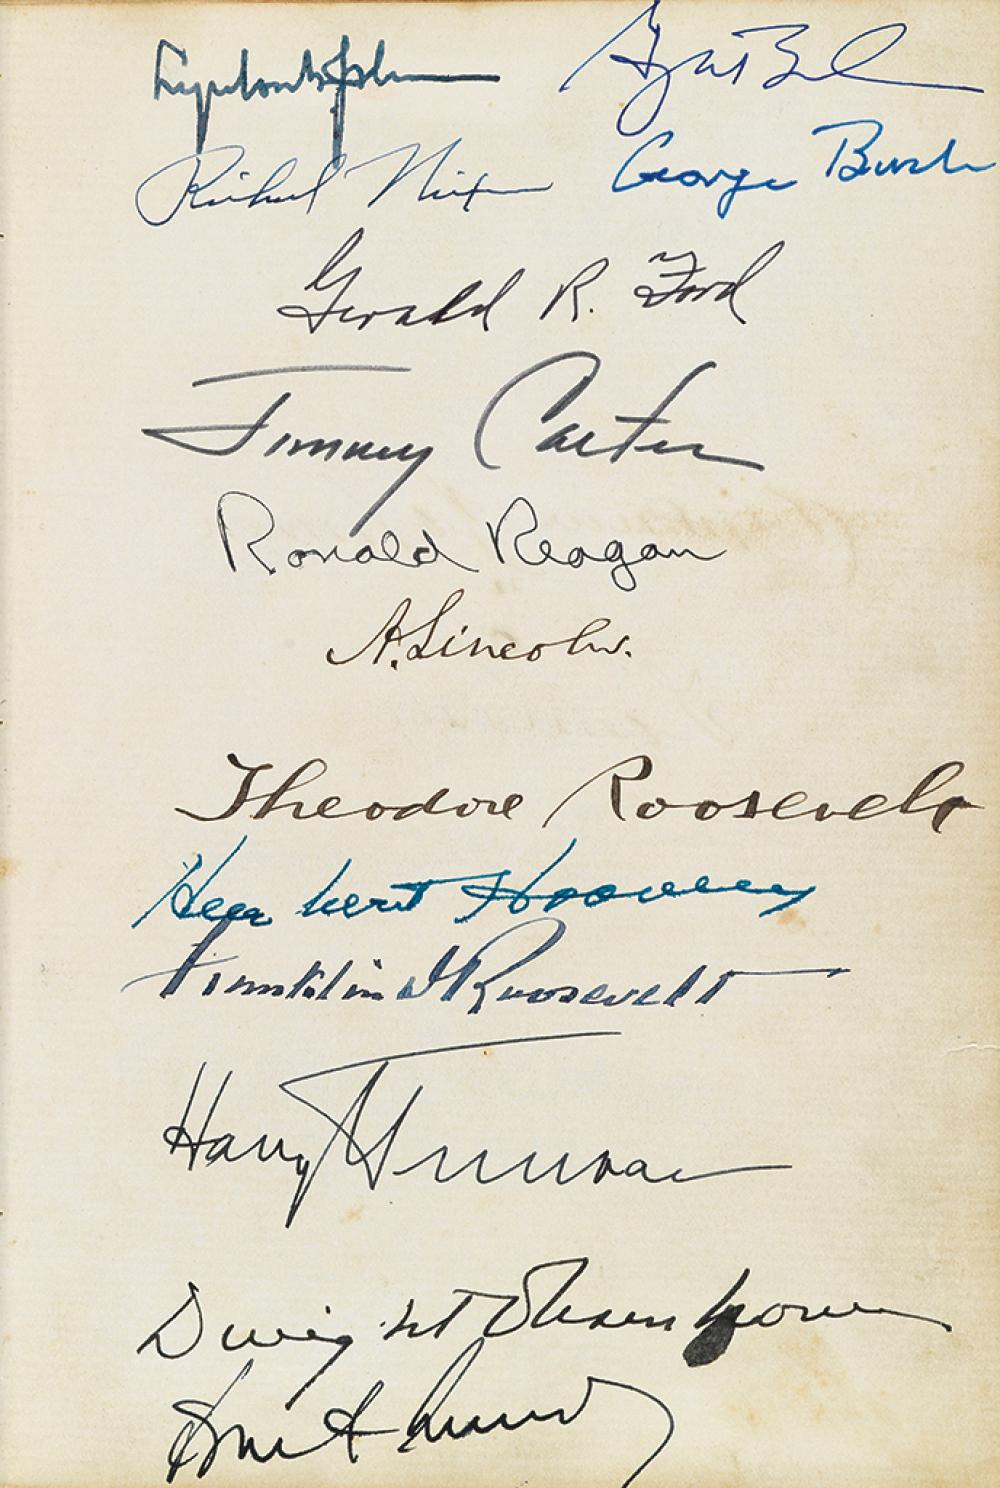 (PRESIDENTS--CIVIL WAR--ALBUM.) Album containing over 130 signatures of mostly Civil War political and military notables, including Abr